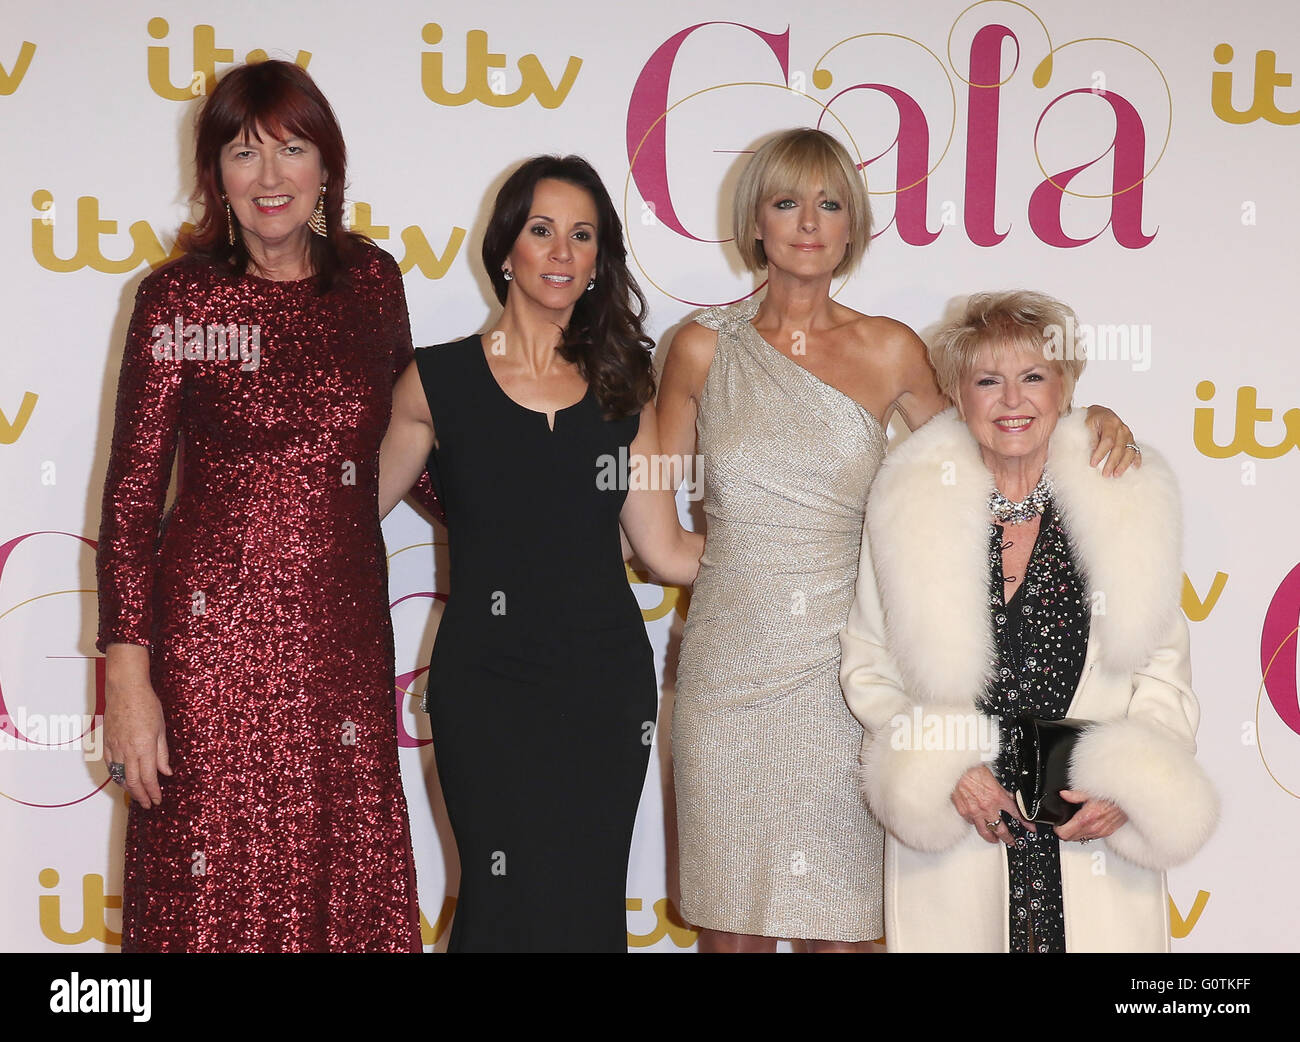 London, UK, 19th Nov 2015: Andrea McLean, Janet Street-Porter, Gloria Hunniford and Jane Moore - Loose Women attend - Stock Image